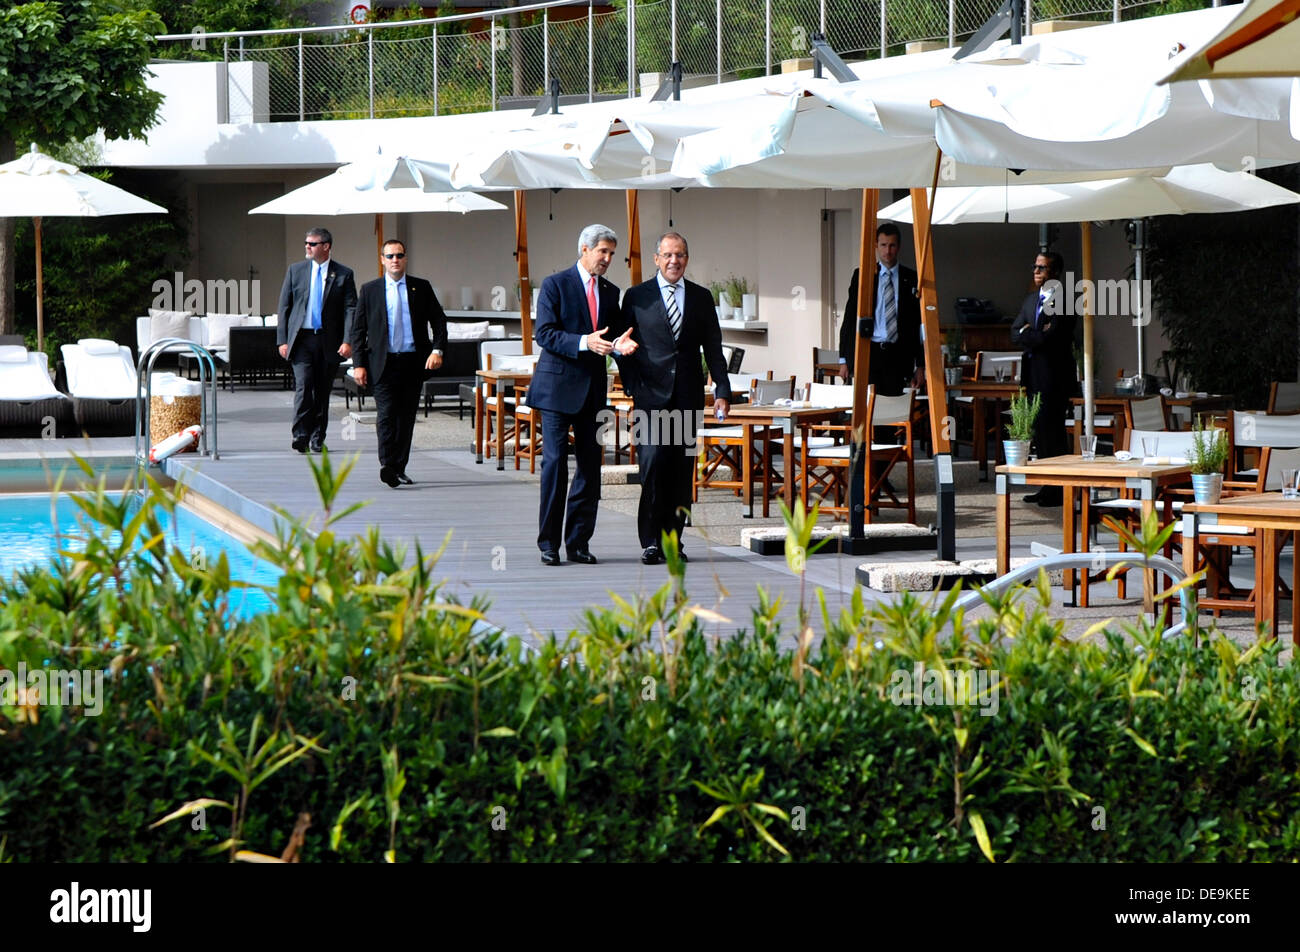 US Secretary of State John Kerry walks with Russian Foreign Minister Sergey Lavrov after the two finalized an agreement related to eliminating chemical weapons from Syria during an impromptu poolside negotiating session September 14, 2013 in Geneva, Switzerland. - Stock Image